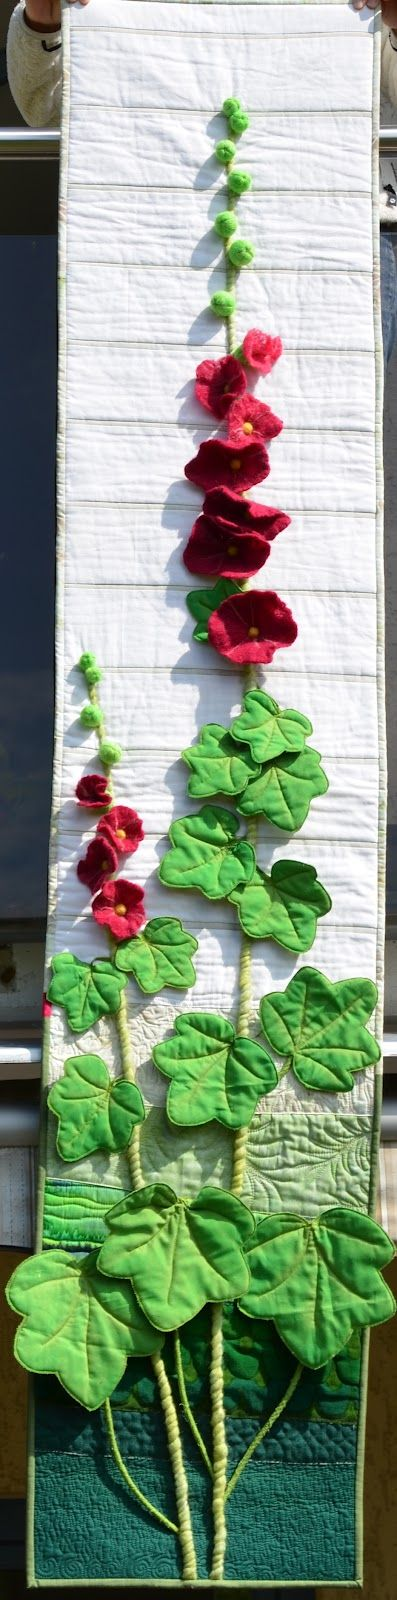 Holly Hock quilted wall hanging. Felted Flowers, leaves are appliqué..  LOVE THIS !